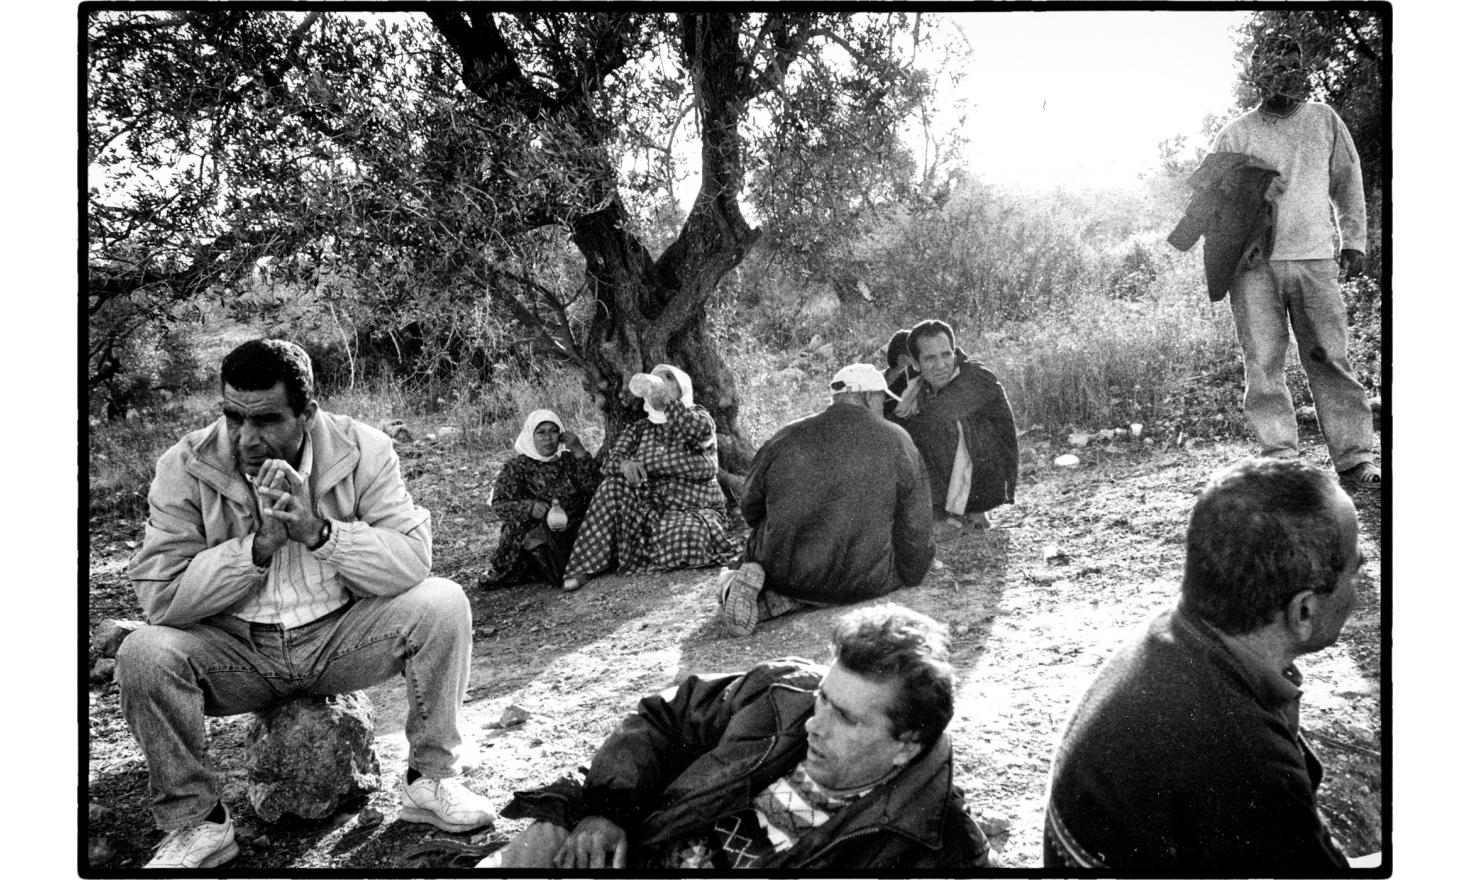 Palestinians await the opening of the security fence, near the Israeli Arab town of Um el Fahm. Israel.November 2005.